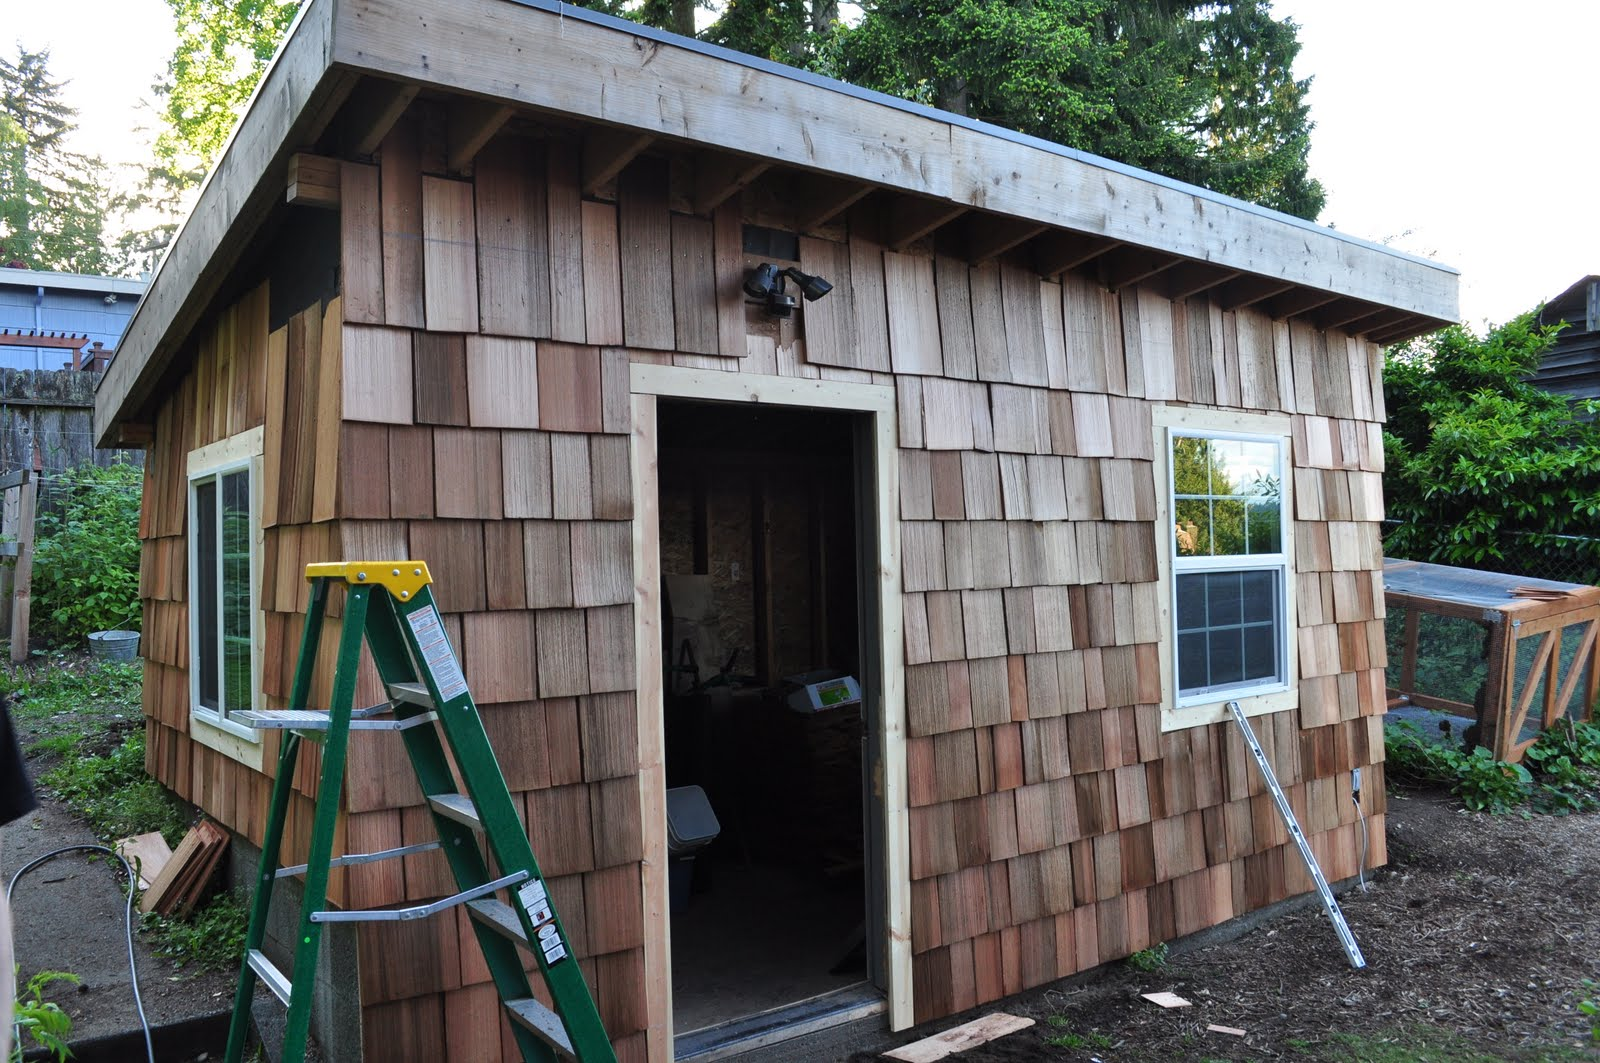 Chris and Sonja - The Sweet Seattle Life: The Chicken Coop - Cedar